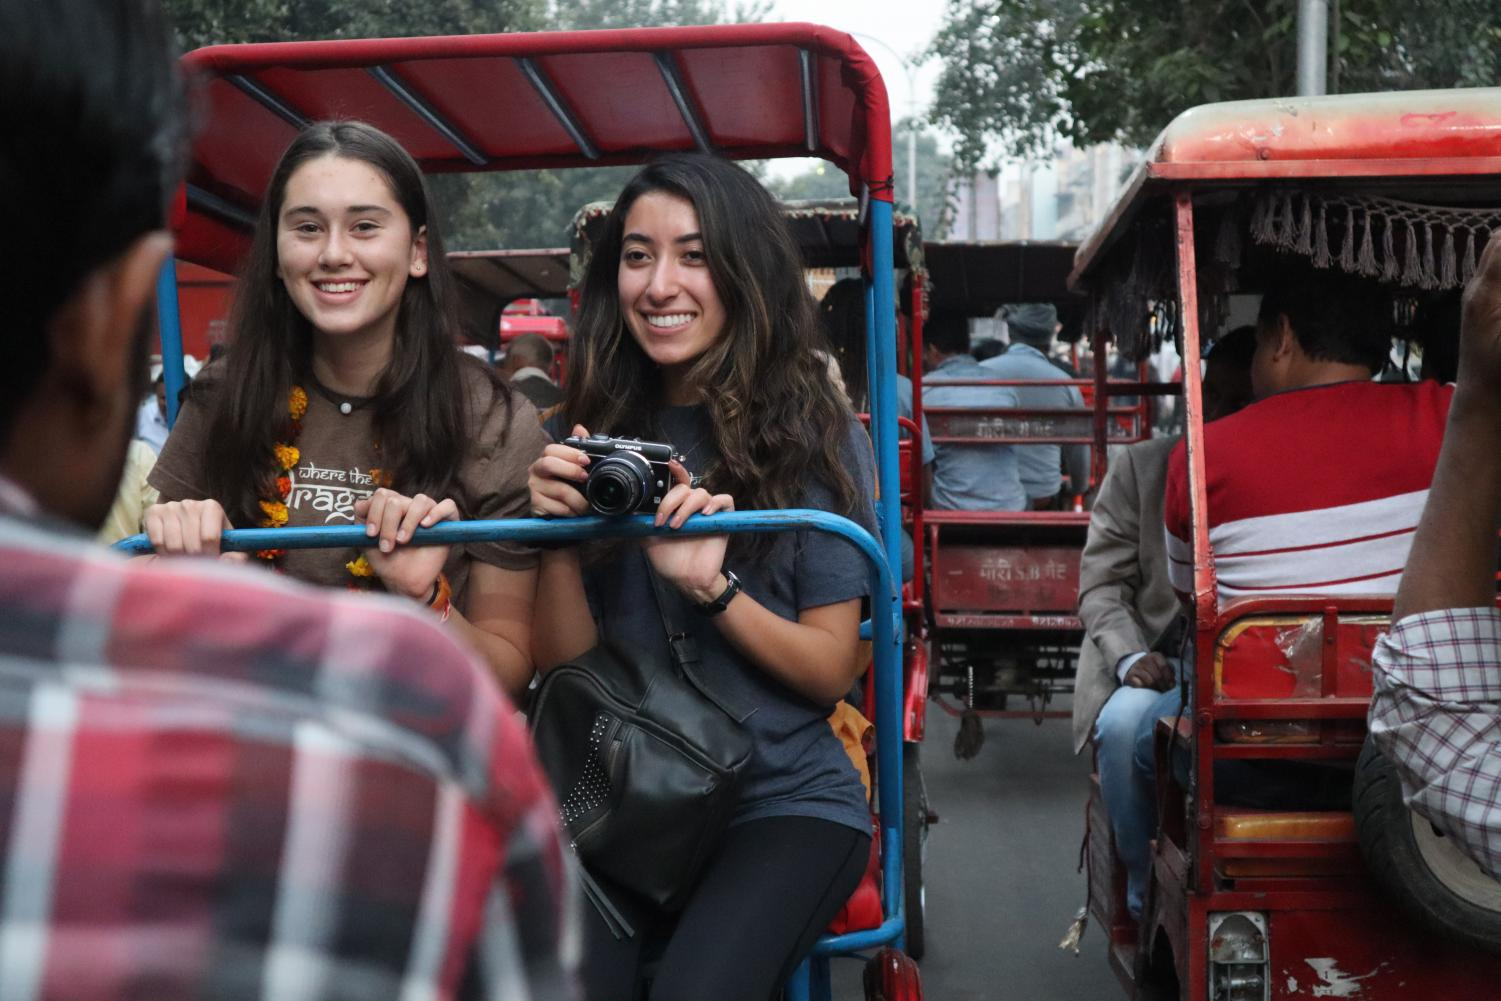 Leila+Mirdamadi+%2720+and+Norah+Adler+%2721+ride+on+a+%27tuk-tuk%27+on+their+first+day+Delhi%2C+India.+This+is+a+common+mode+of+transportation+in+India.+